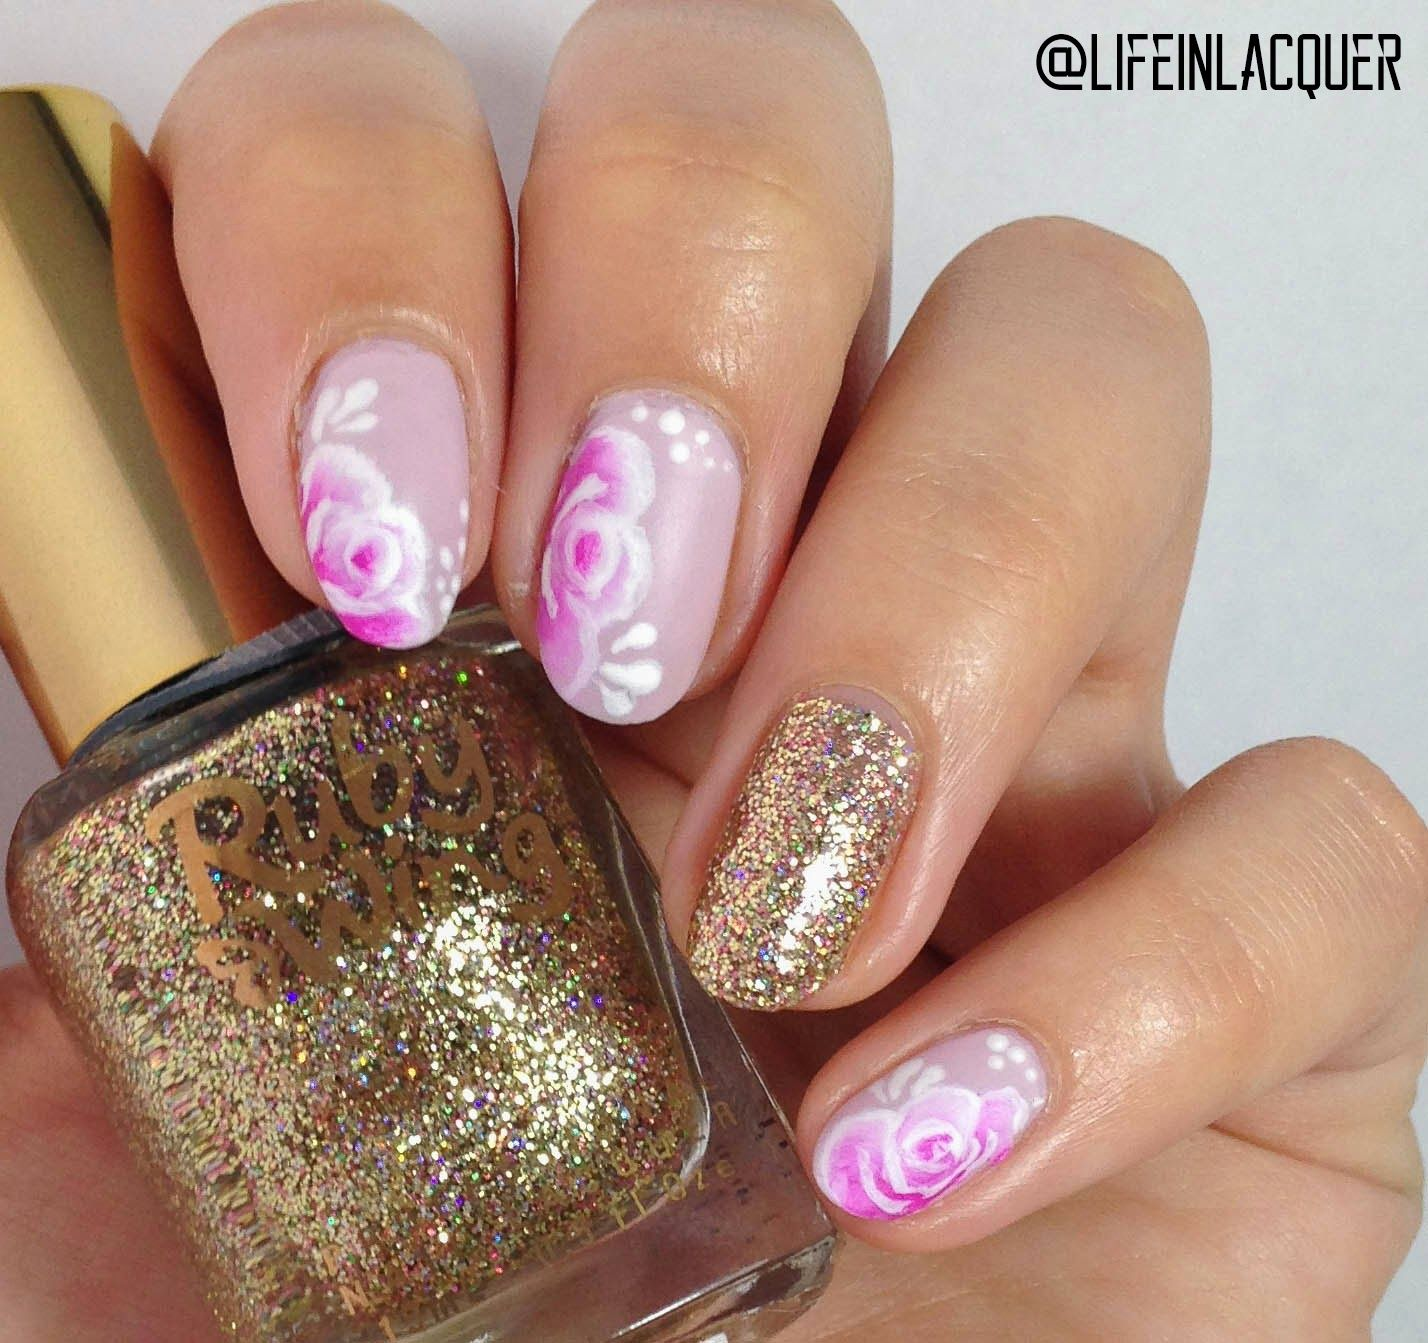 Life in Lacquer one stroke rose glitter nail art design